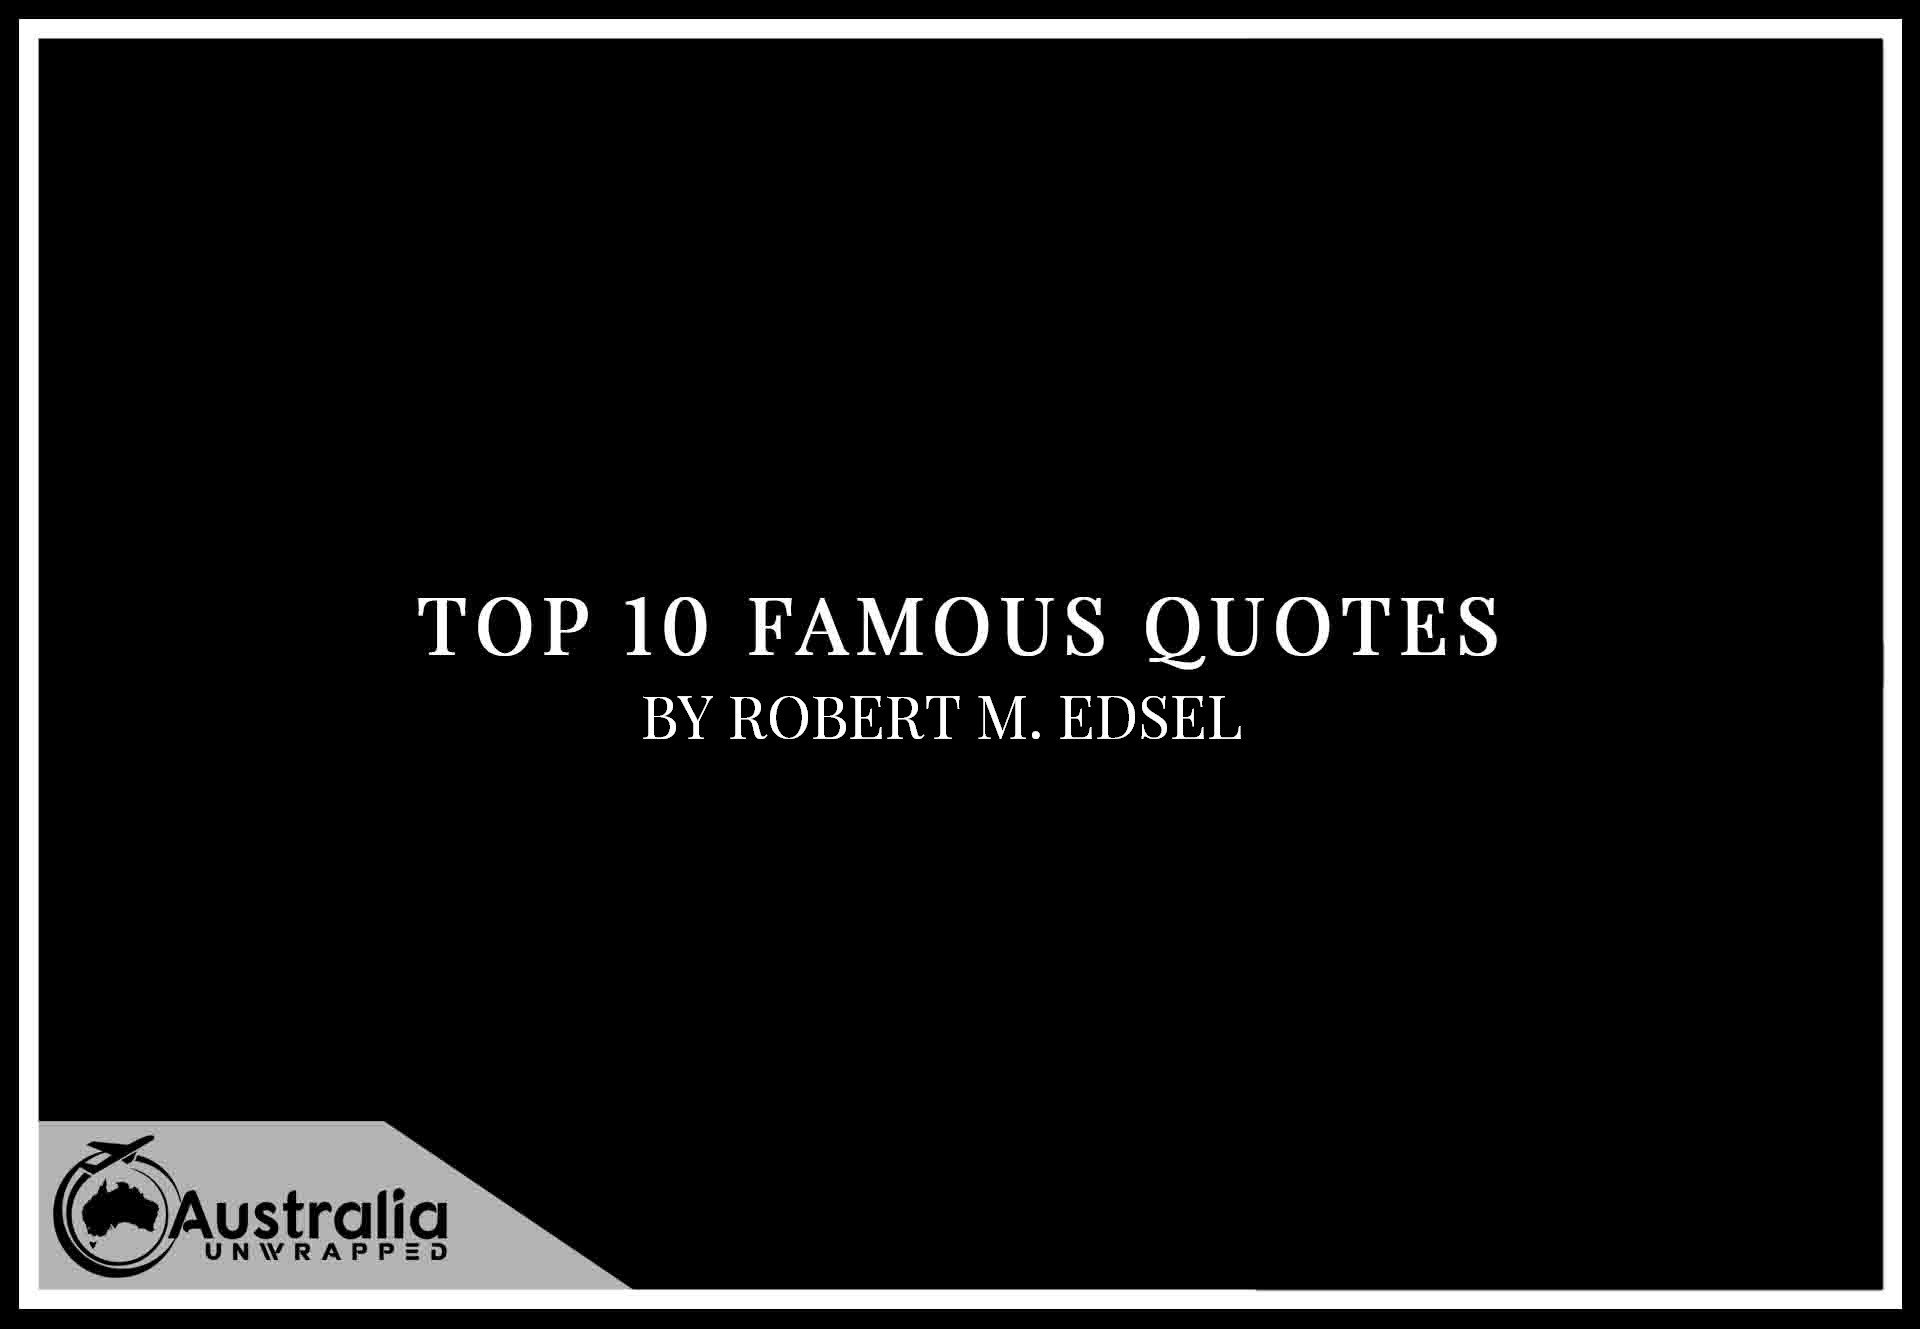 Top 10 Famous Quotes by Author Robert M. Edsel